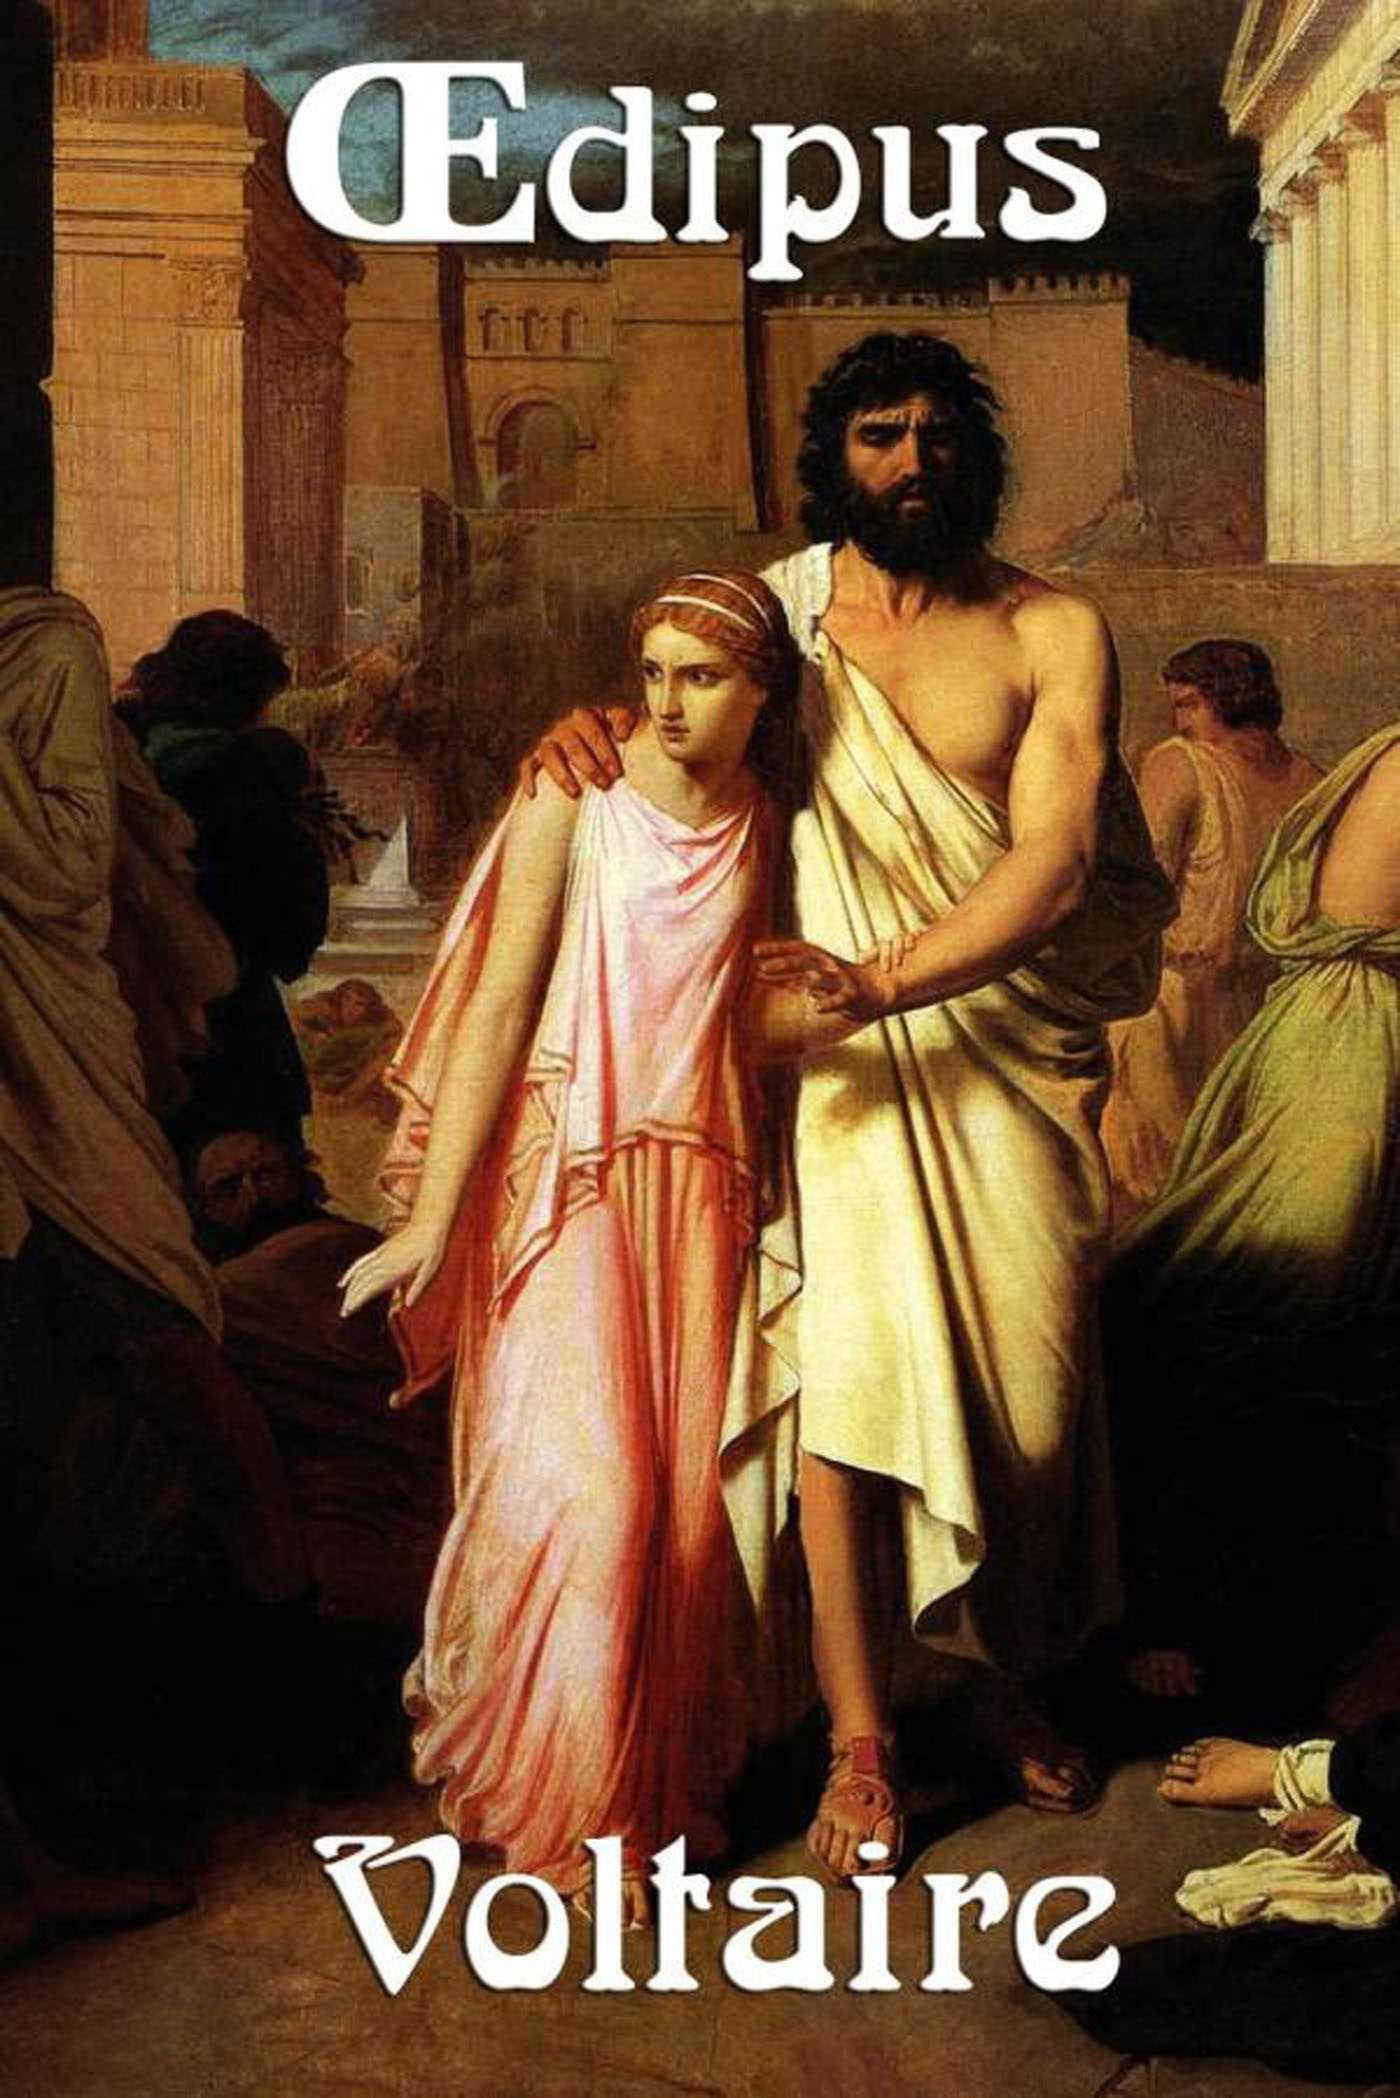 worst essay ever oedipus The worst mistakes were his professional ethical ones freud turned his back on arguably one of his finest -- especially emotionally speaking -- essays ever in.